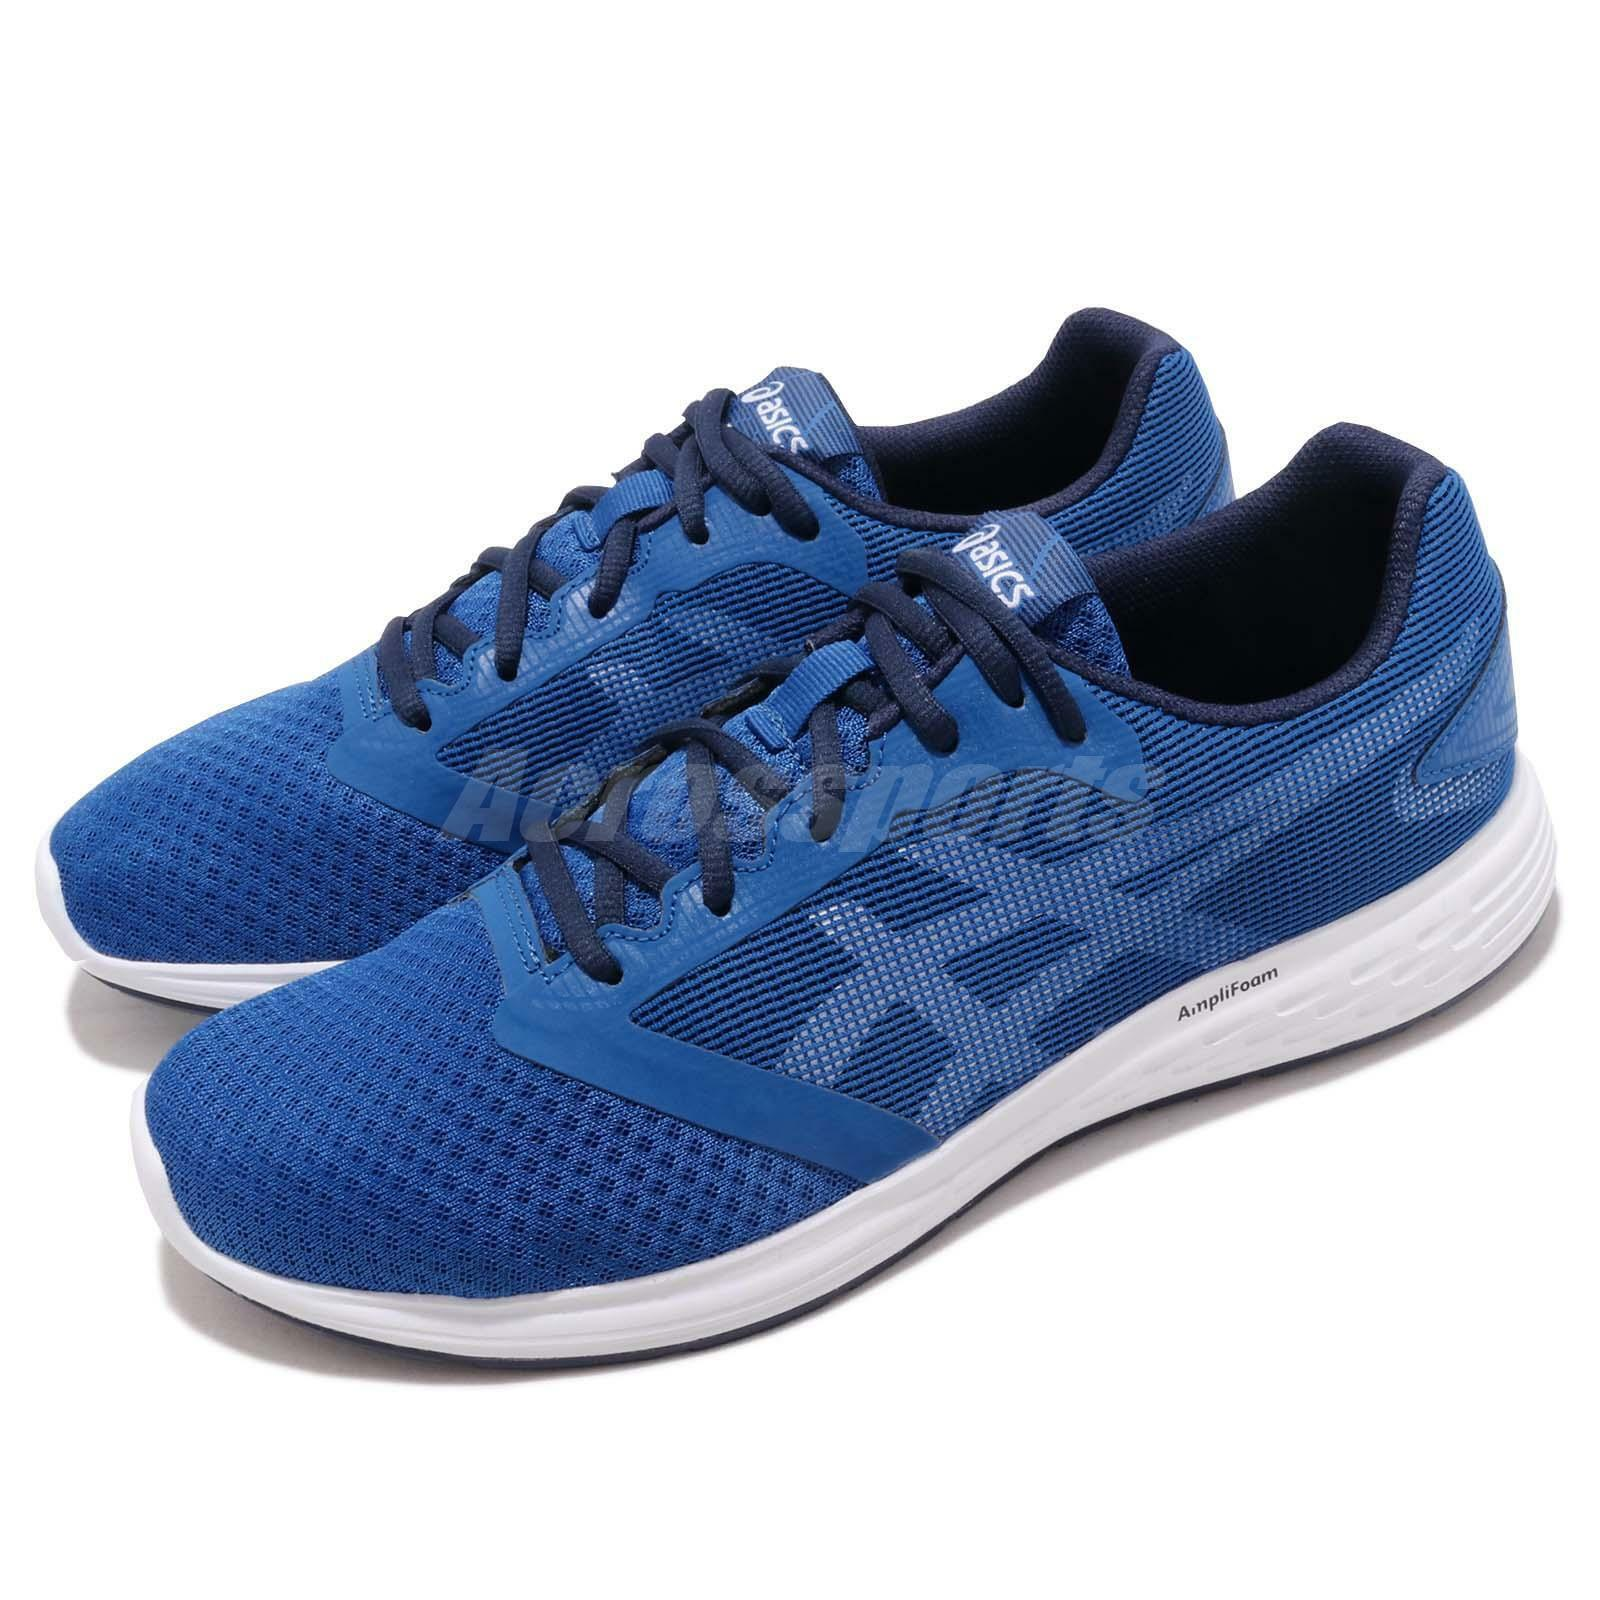 Asics Patriot 10 Imperial azul blanco Men Running zapatos zapatillas 1011A131-402